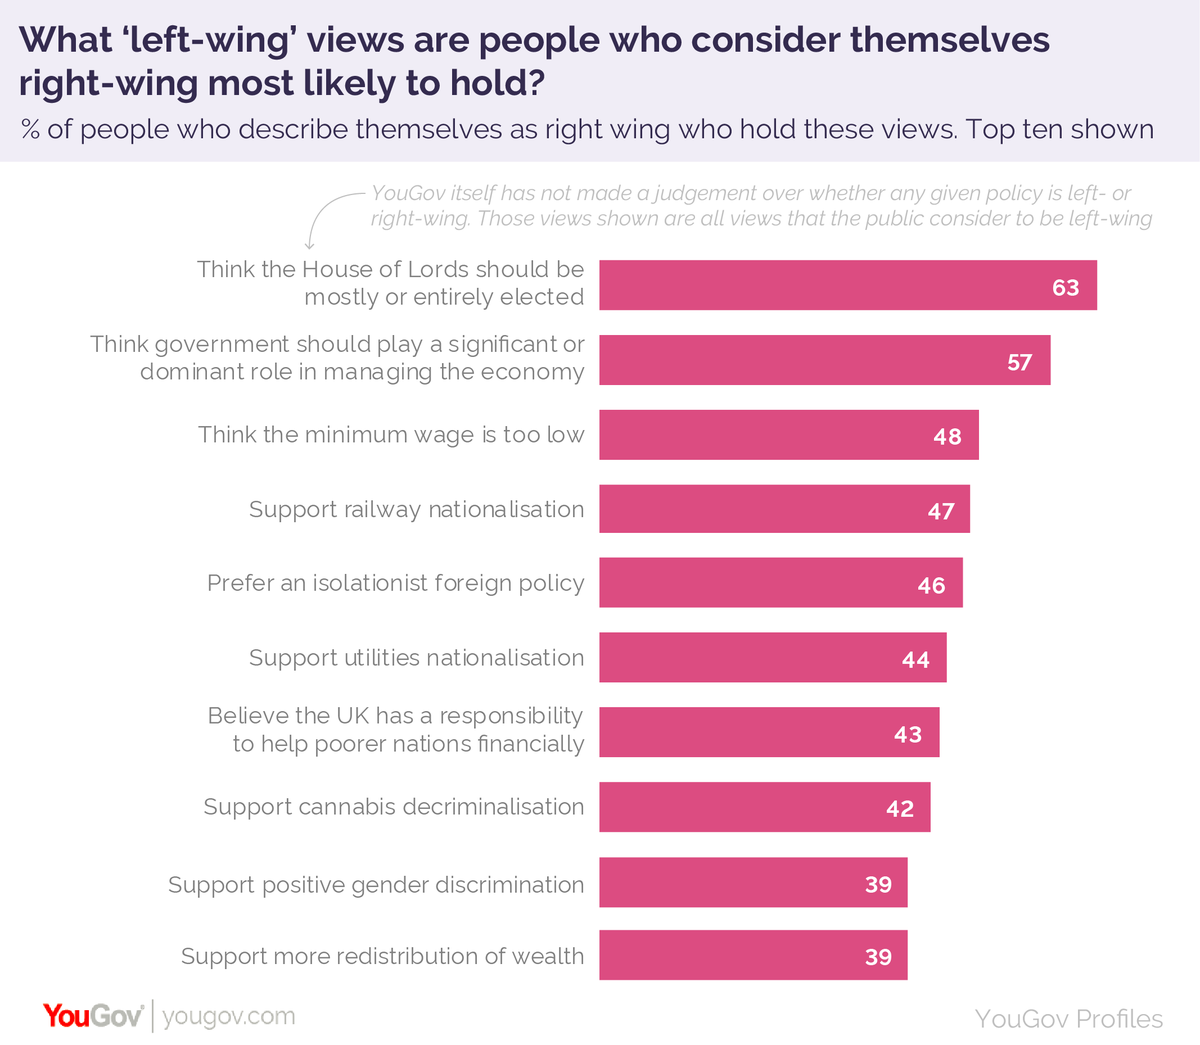 ...while 44-47% of people who consider themselves right wing would support utilities and/or railway nationalisation https://yougov.co.uk/topics/politics/articles-reports/2019/08/14/left-wing-vs-right-wing-its-complicated?utm_source=twitter&utm_medium=website_article&utm_campaign=left_right_wing…